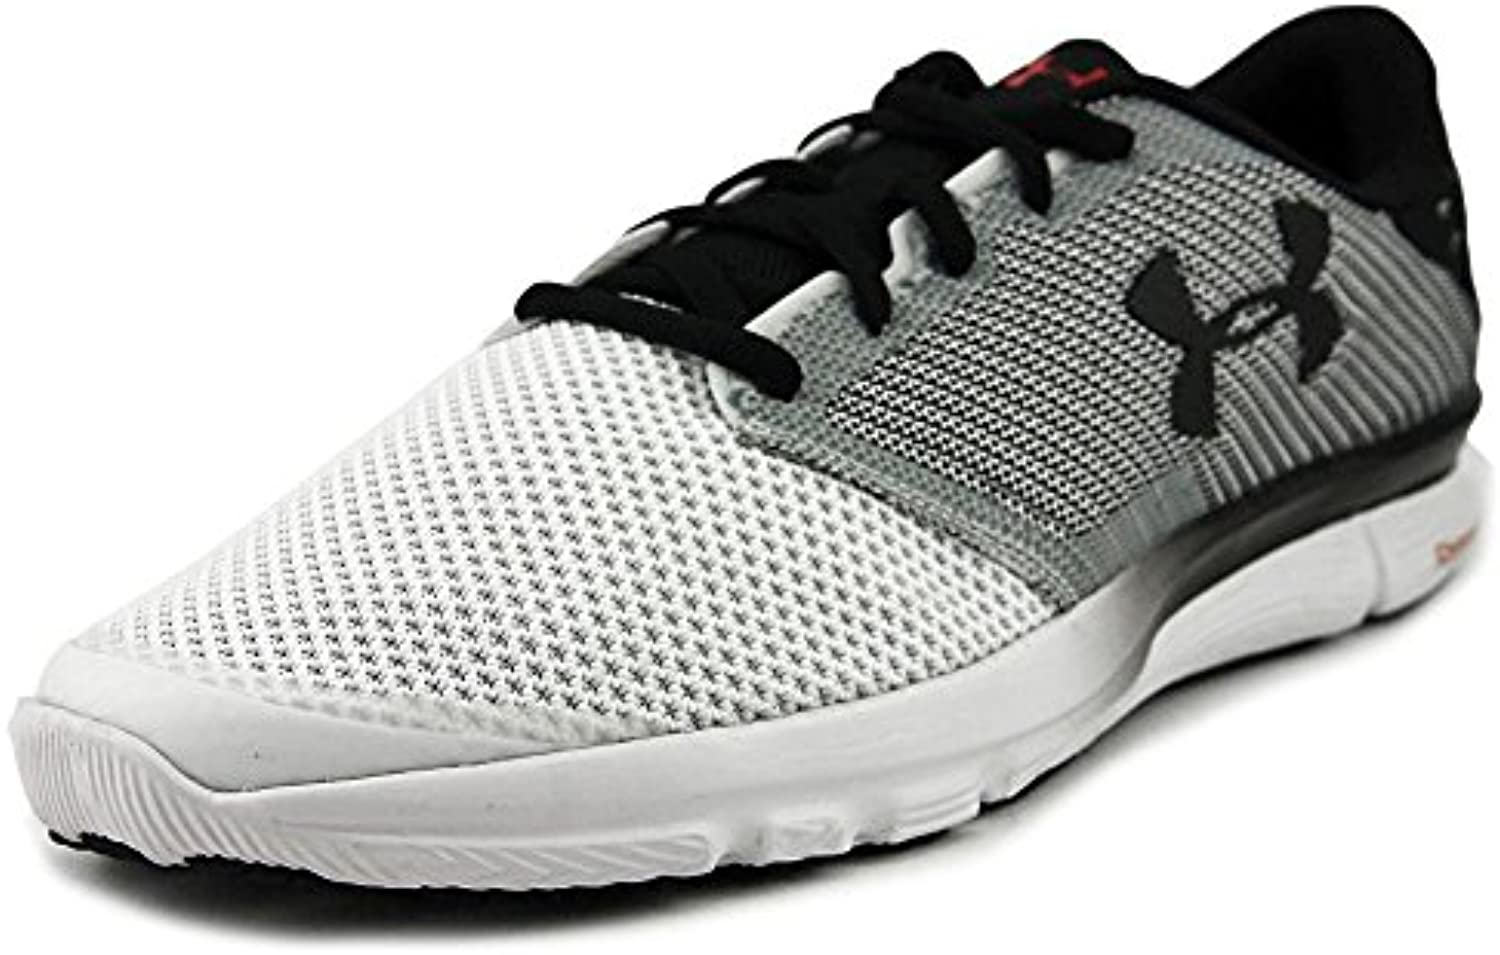 Under Armour Charged Reckless (1288071-100)